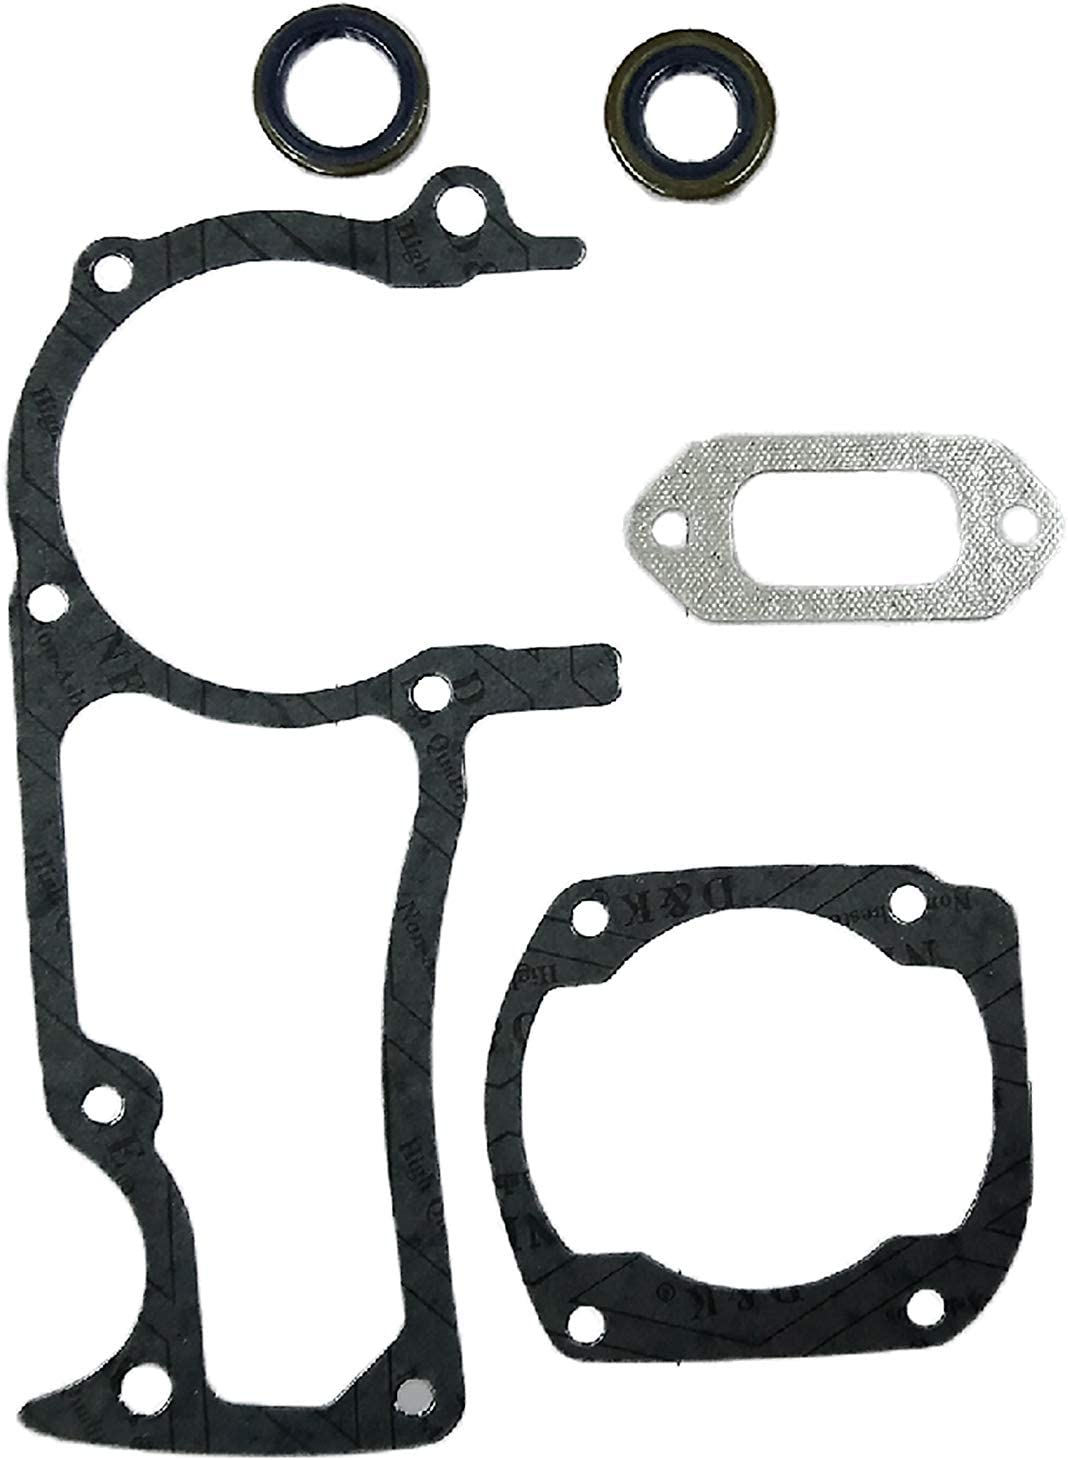 HUSQVARNA 242 COMPLETE GASKET SET CHAINSAW NEW